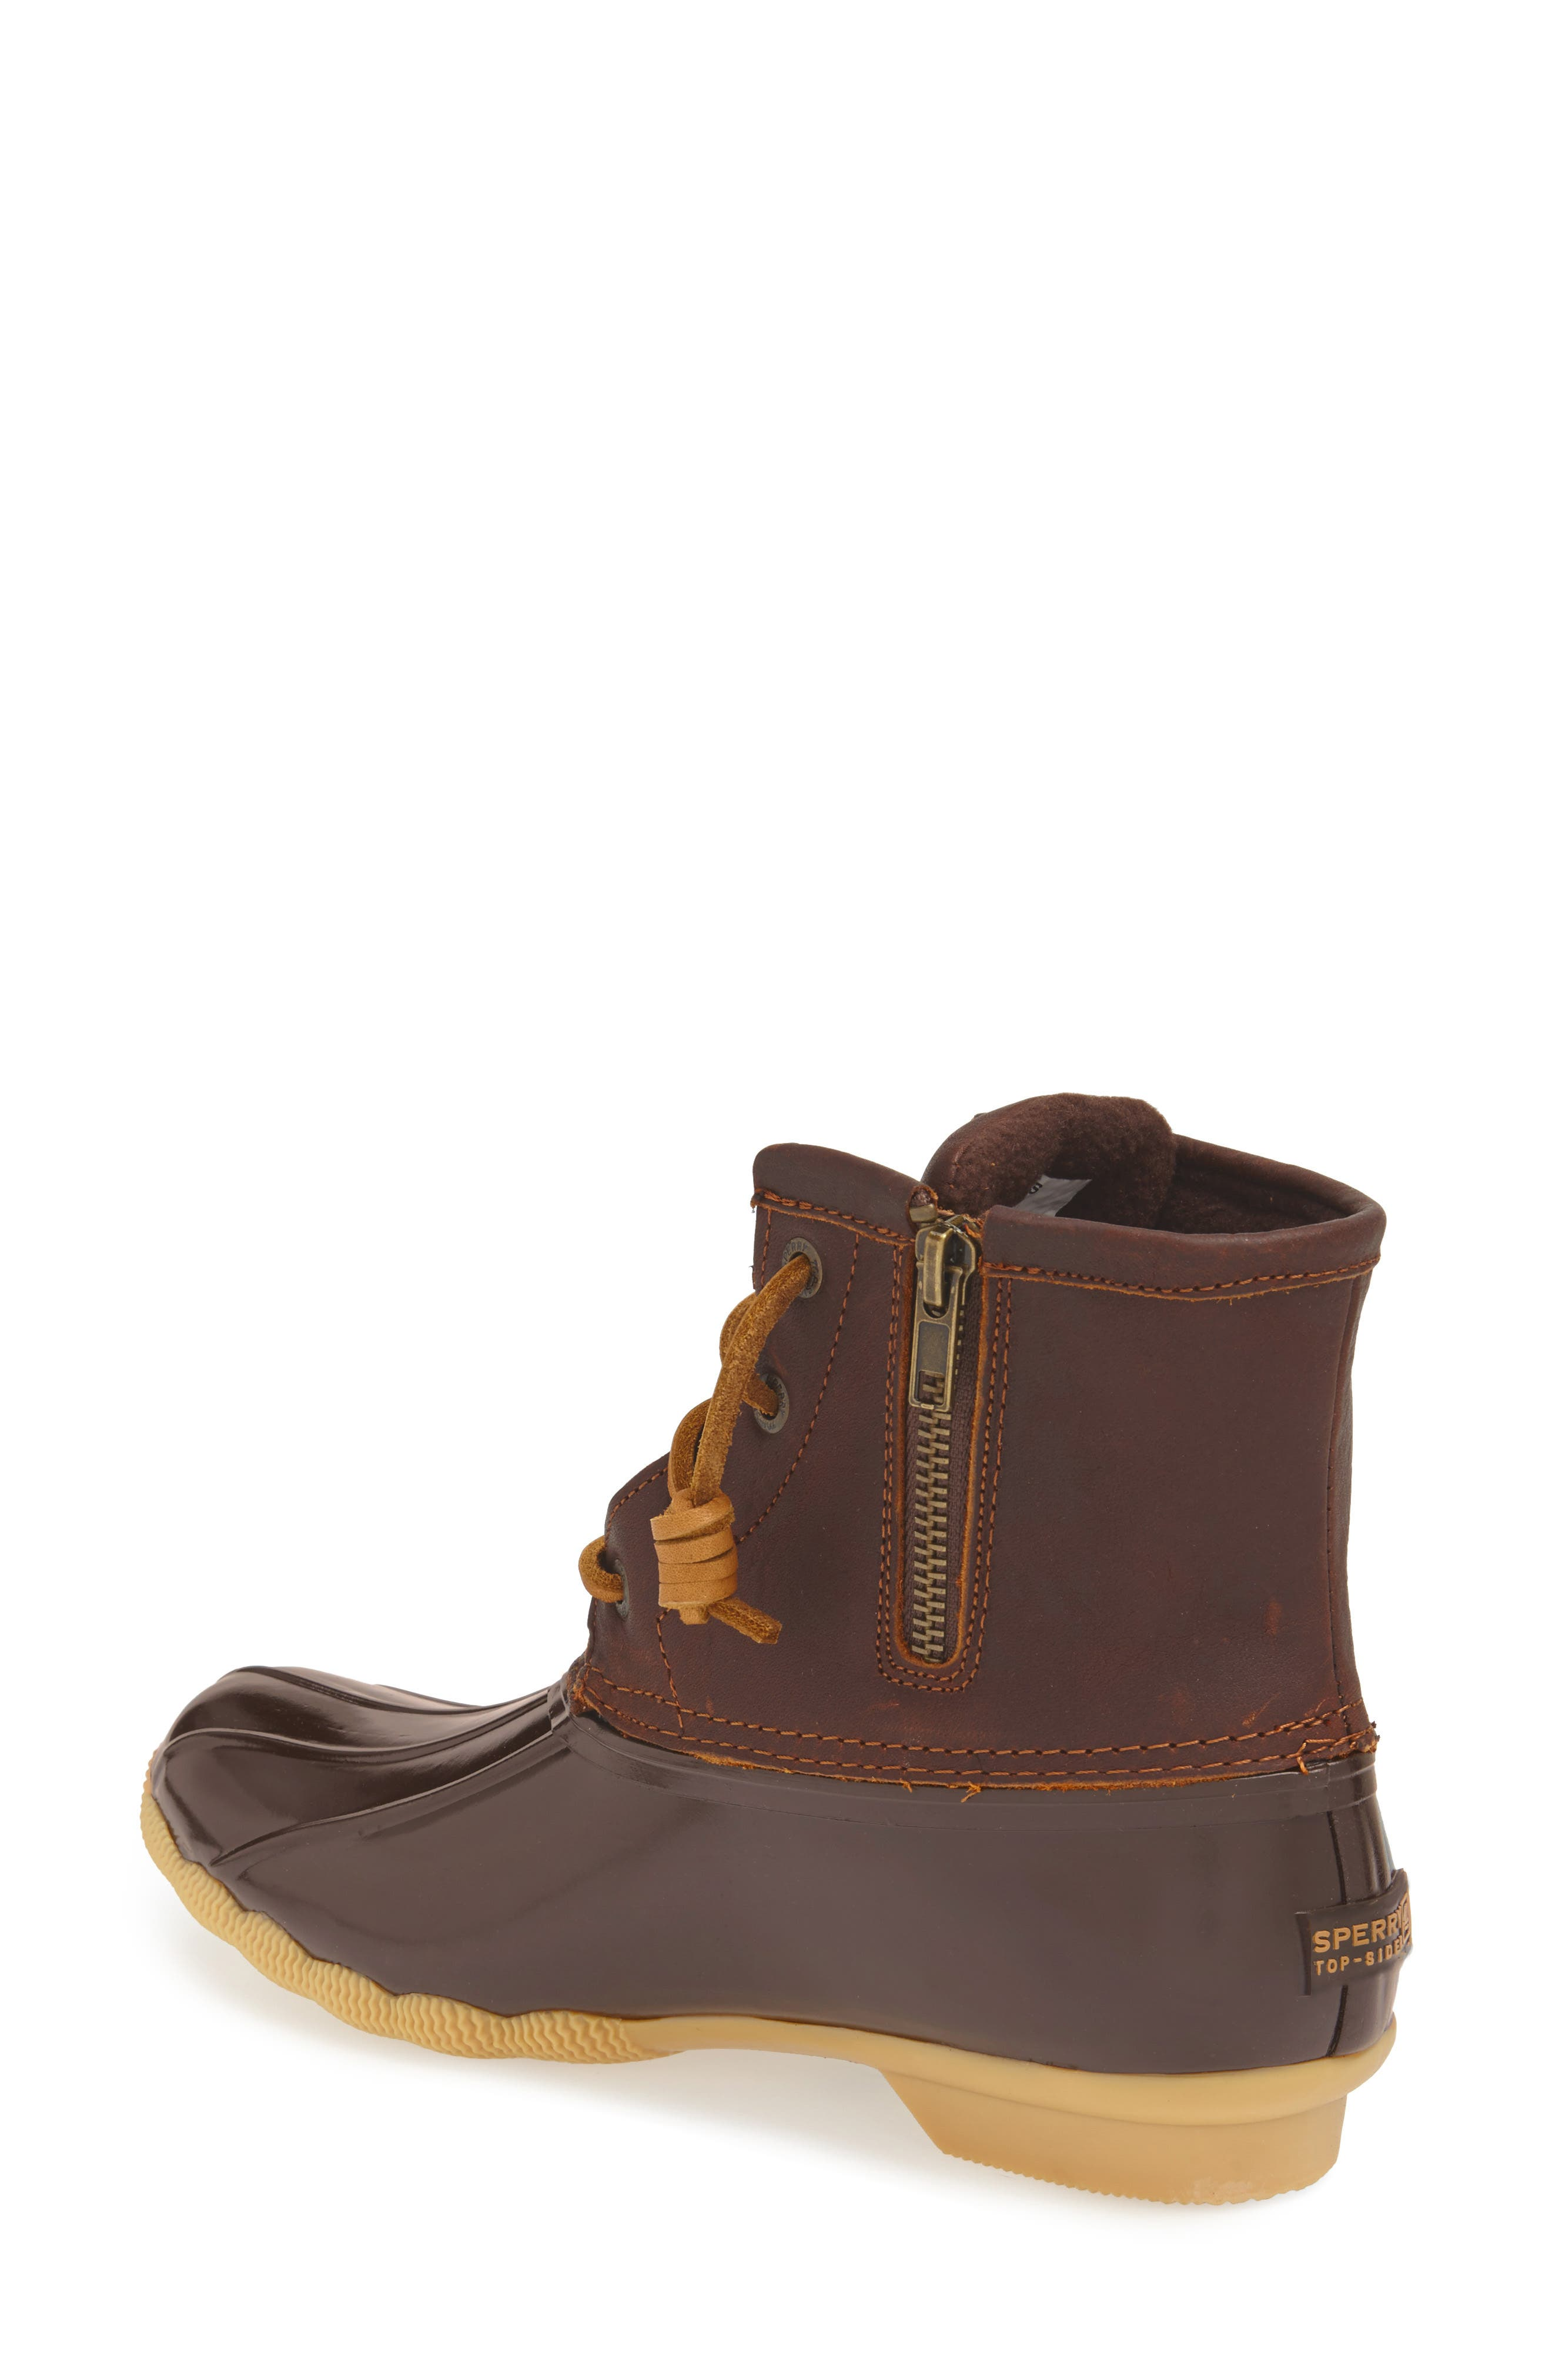 Saltwater Rain Boot,                             Alternate thumbnail 2, color,                             Tan/ Brown